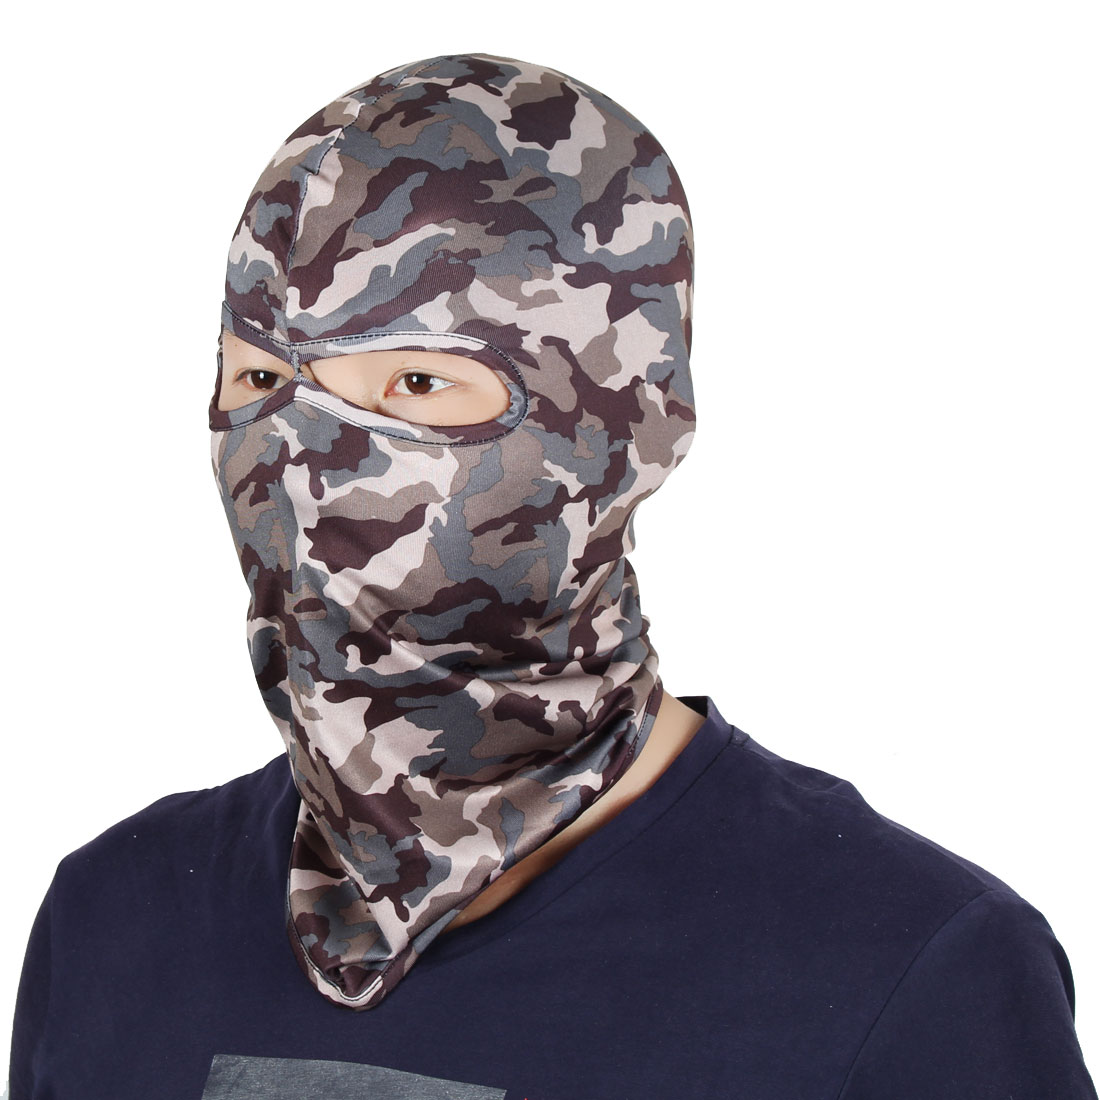 Full Coverage Face Mask Activities Hunting Cycling Eyes Holes Helmet Balaclava by Unique-Bargains